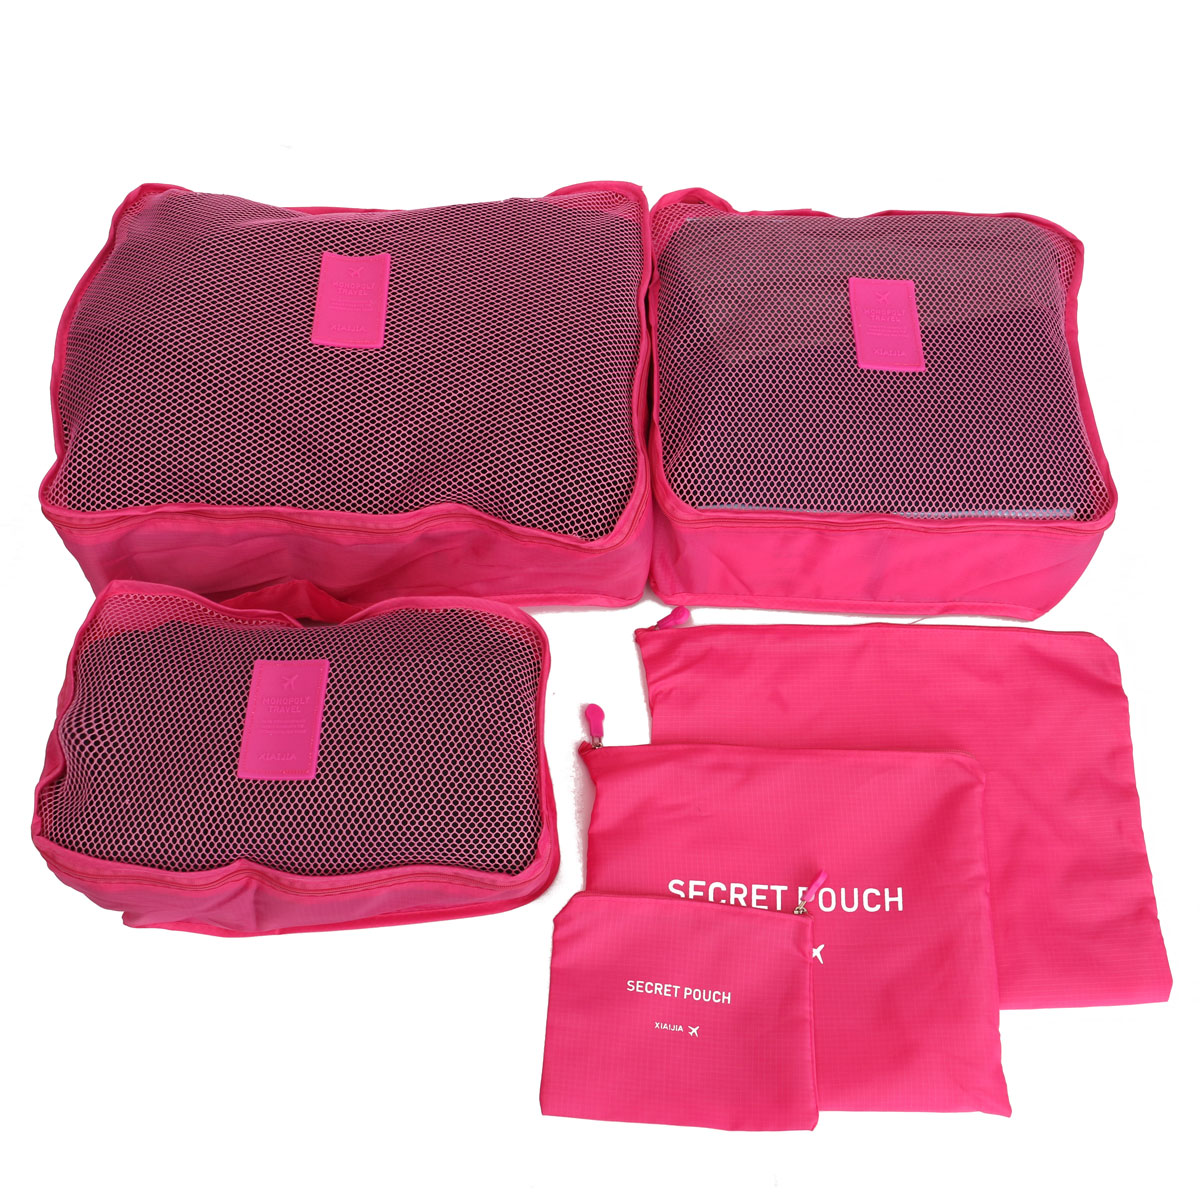 6Pcs Waterproof Travel Storage Bags Pouch Luggage Organizer Packing Cube Clothes